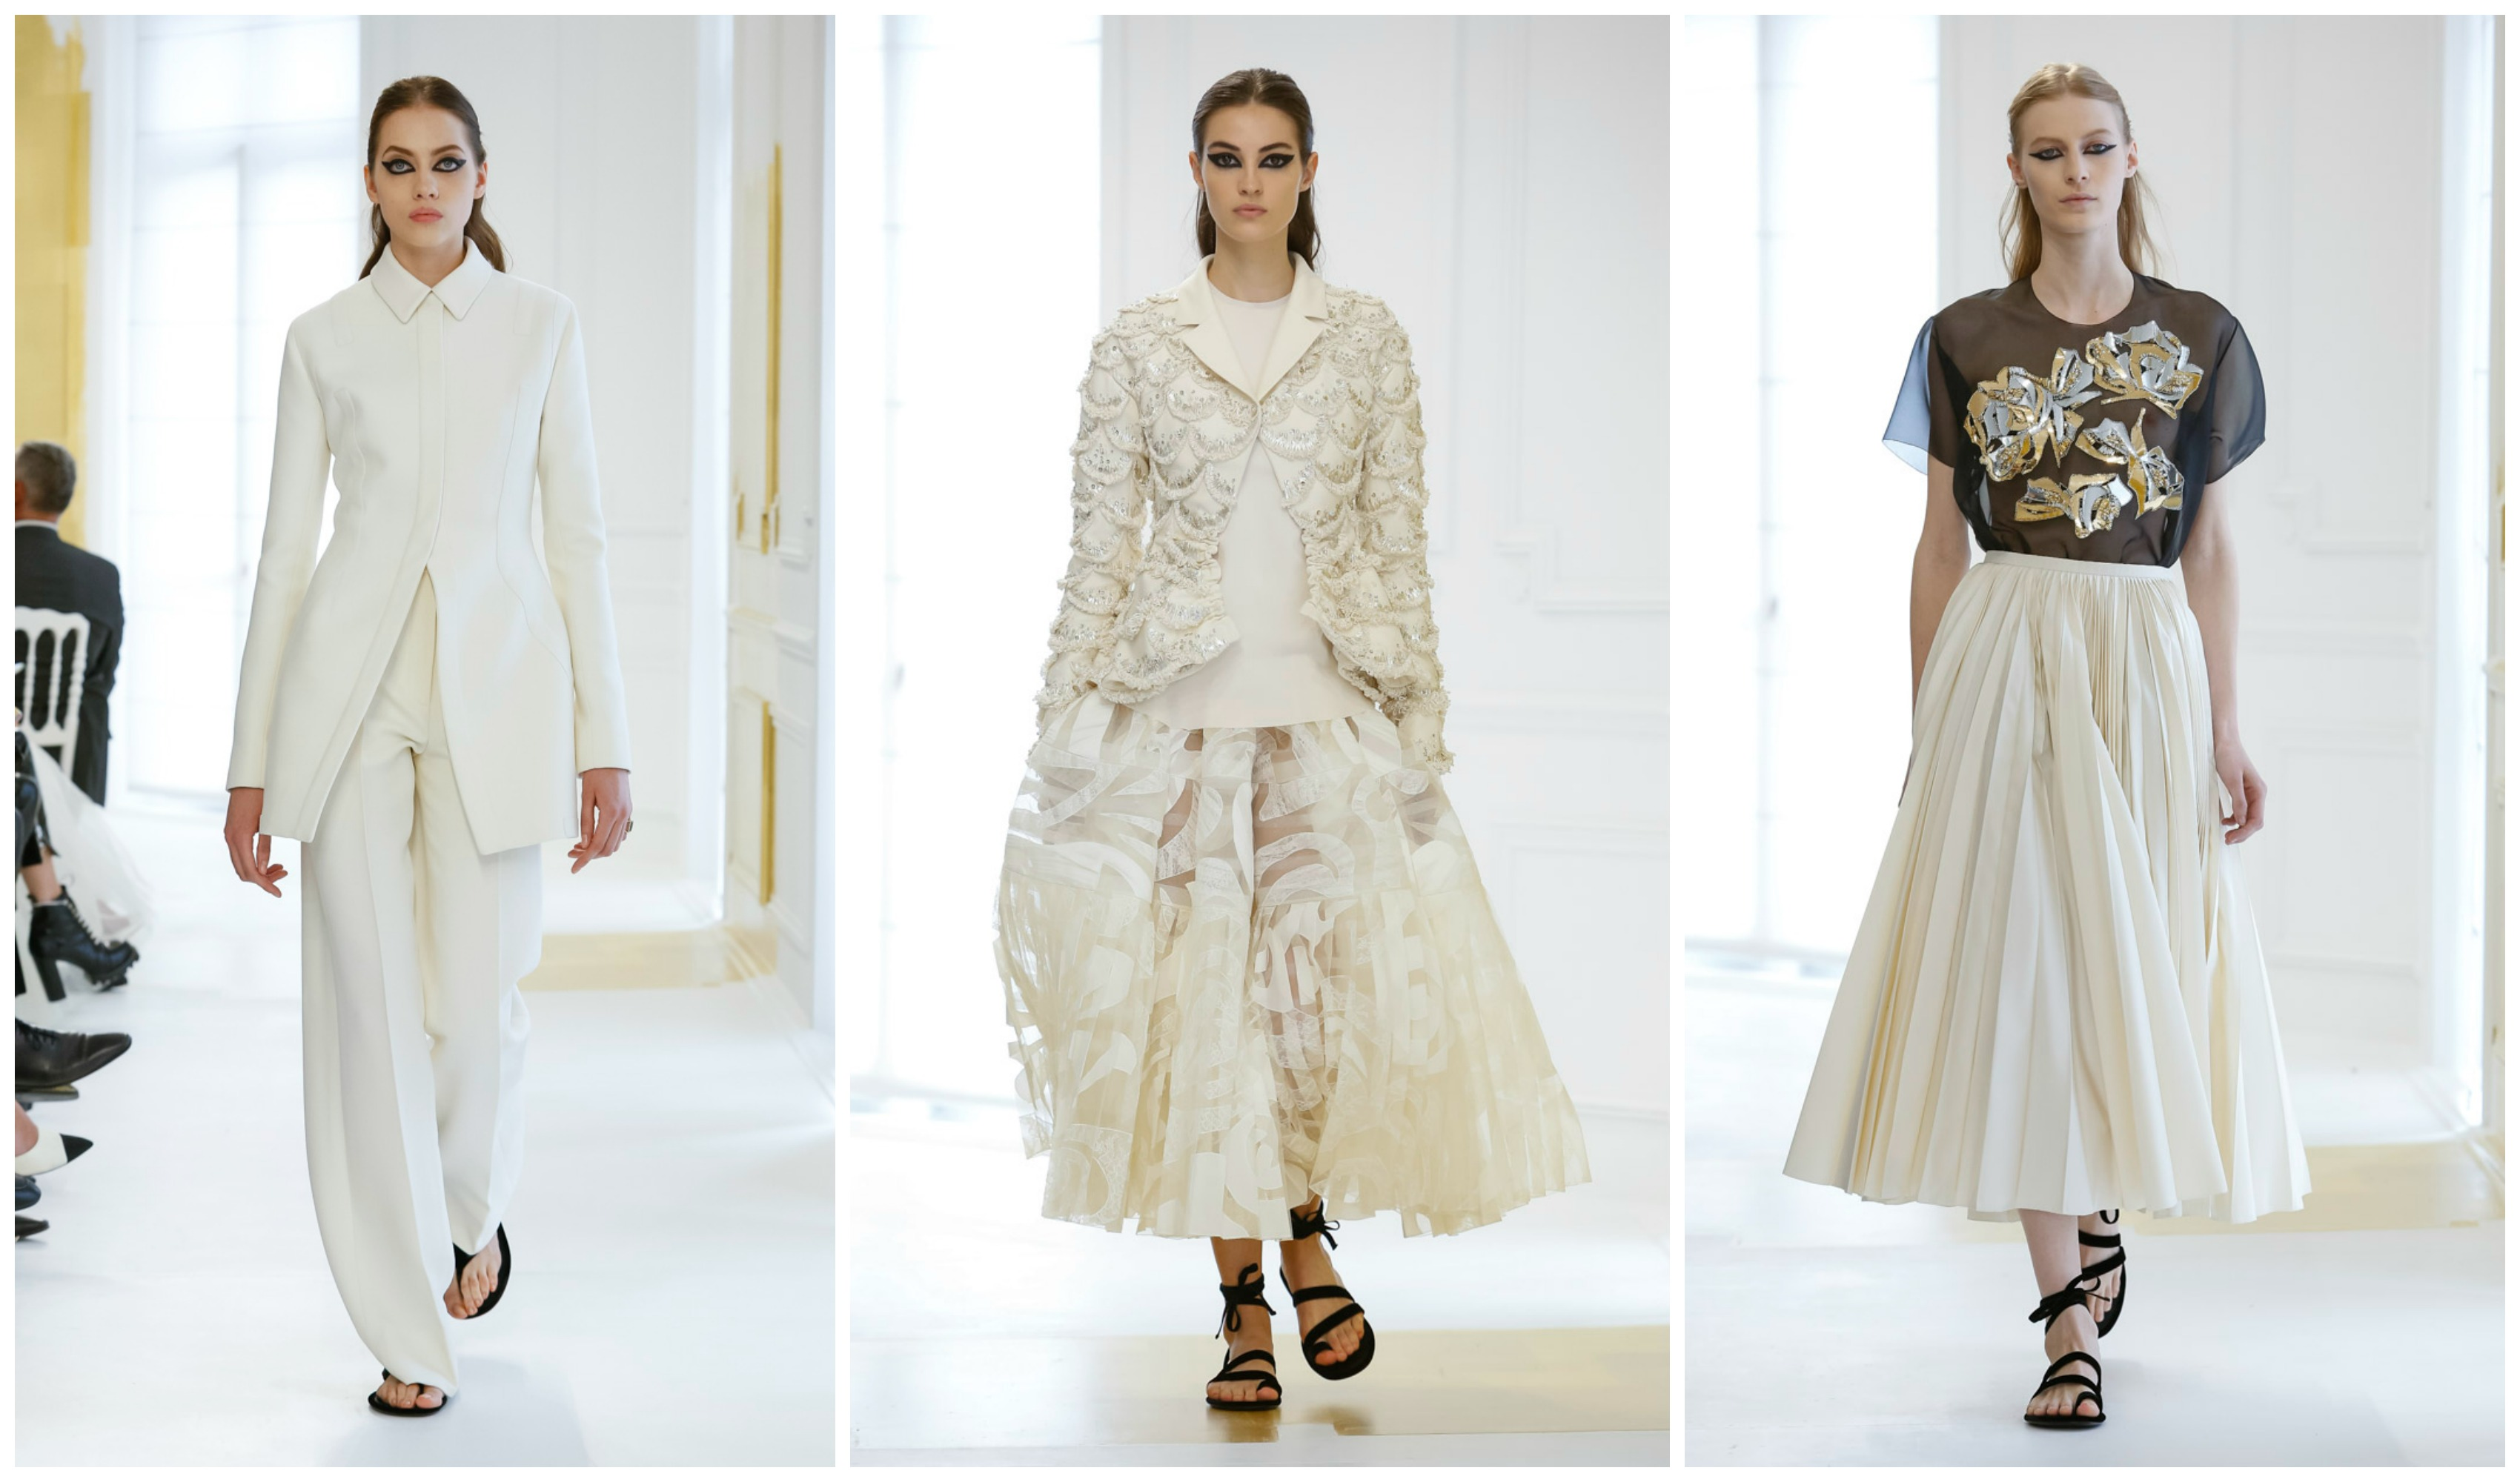 DIOR WINTER FASHION INSPIRATIONS TO STEAL